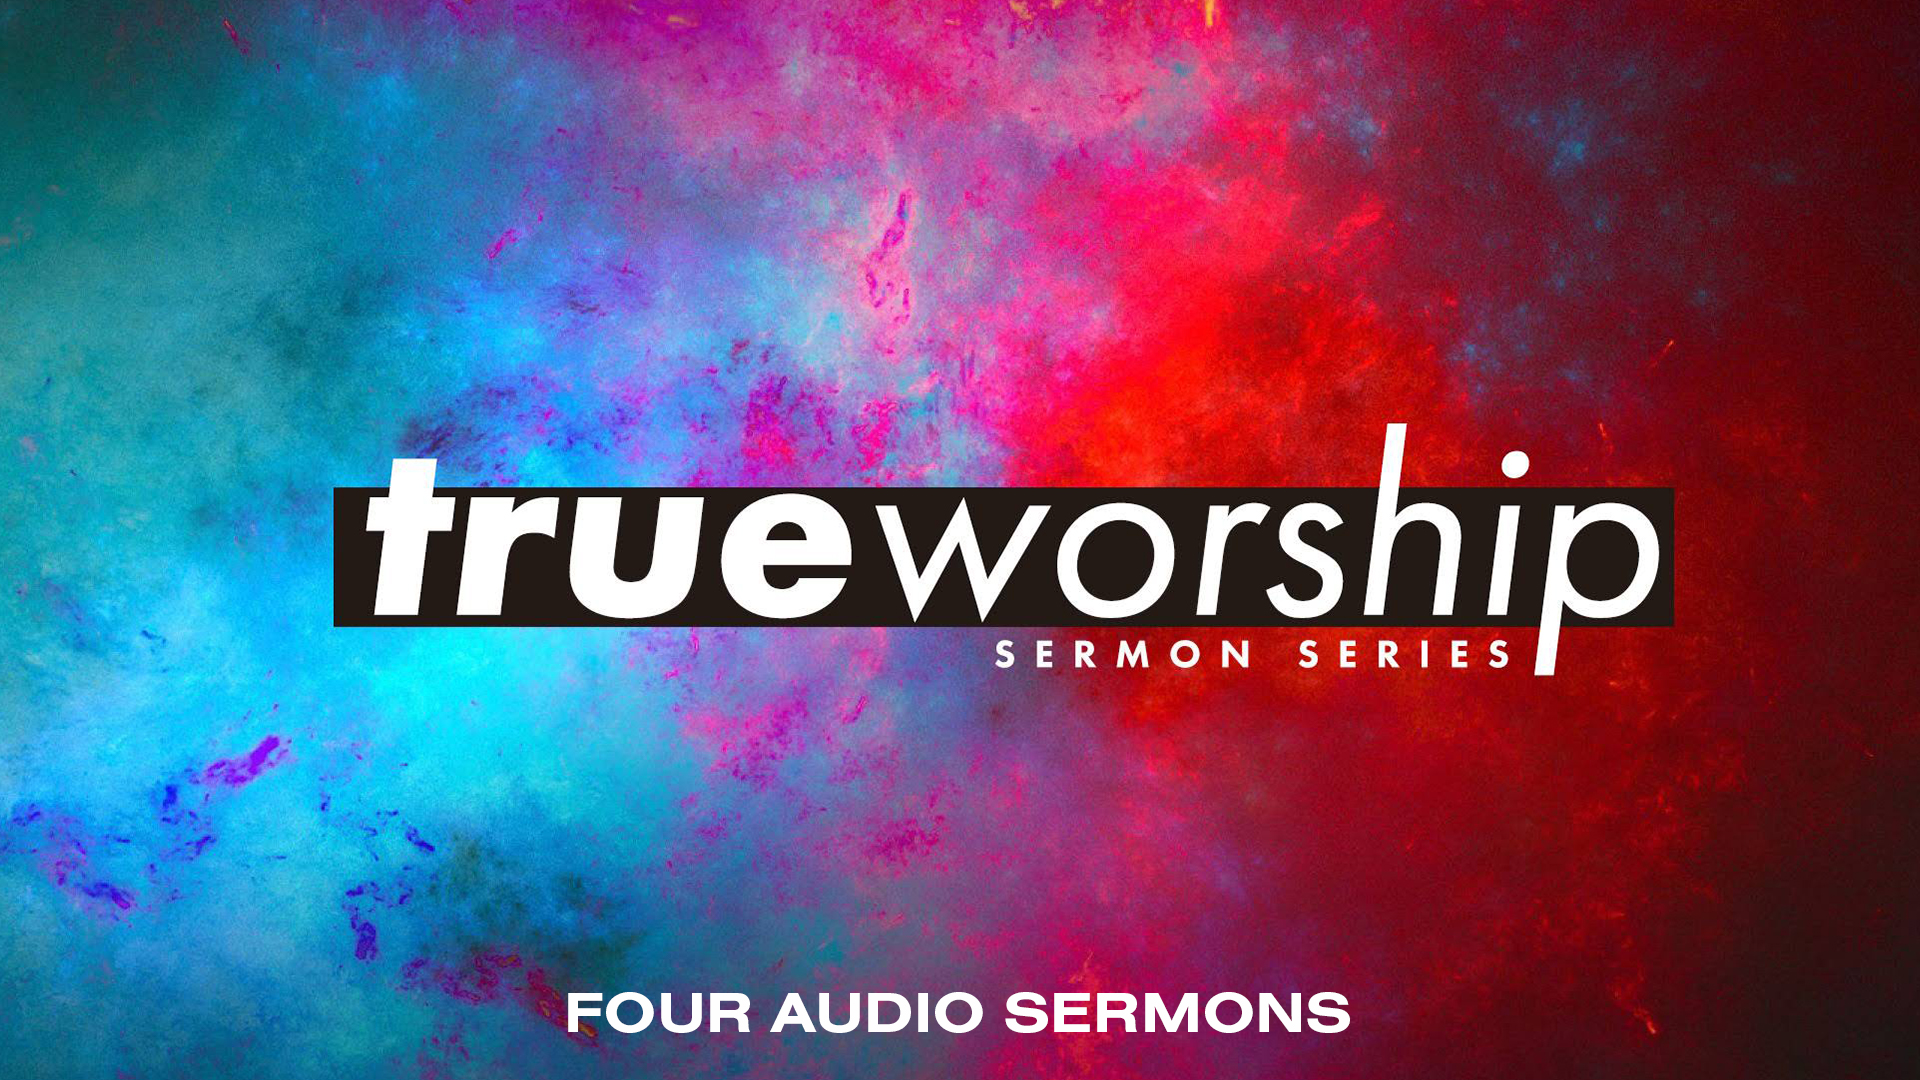 https://vladimirsavchuk.com/resources/true-worship-audio-series/